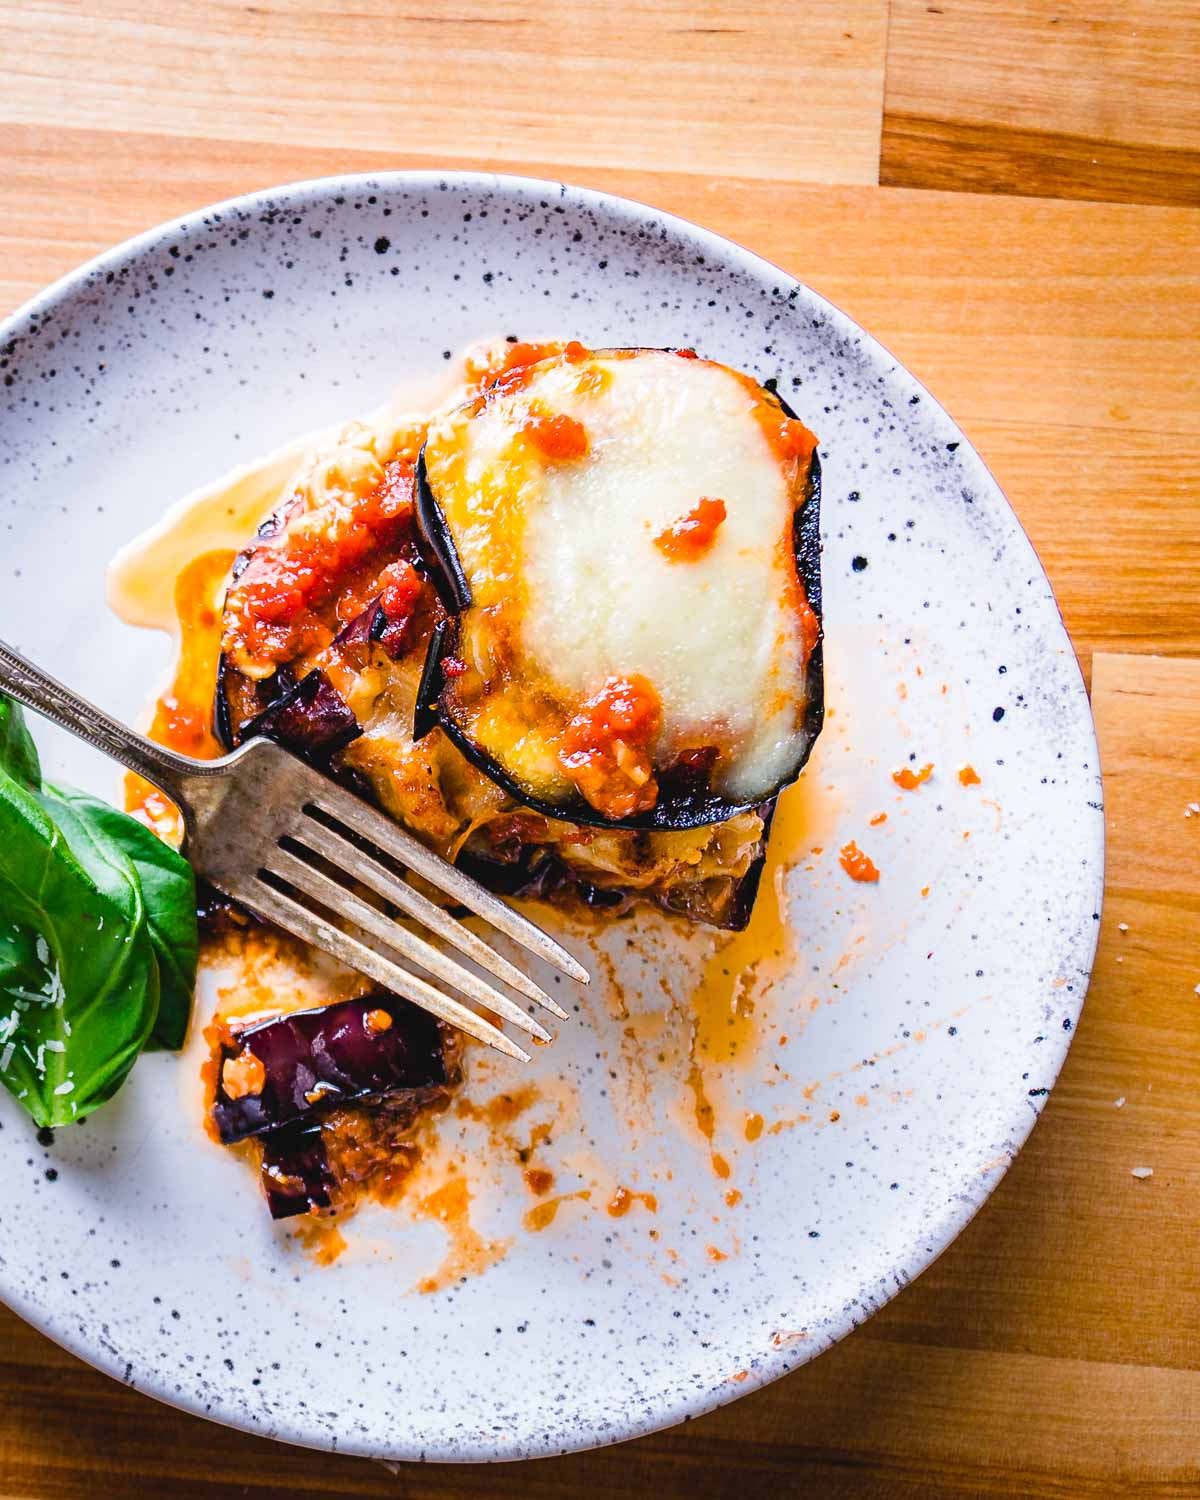 One serving of eggplant parm in white plate with fork on table.